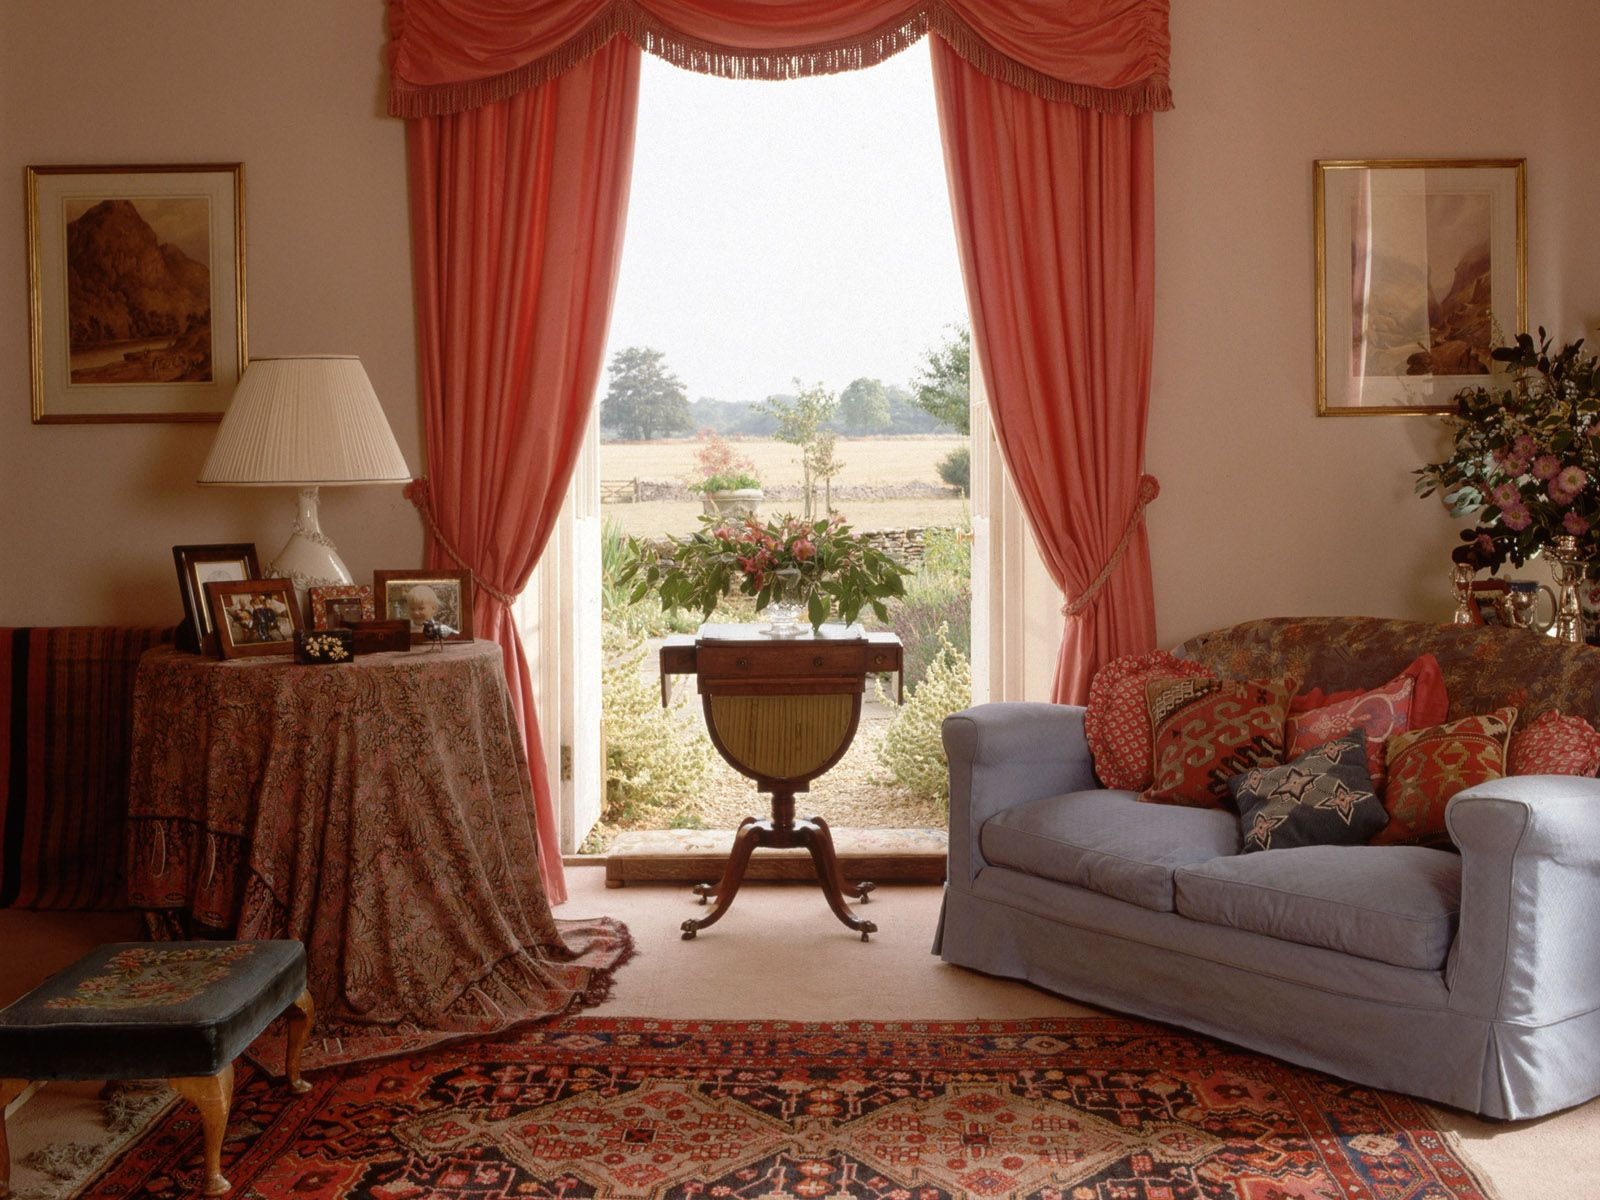 Classic curtain designs for living room - Room Traditional Country Style Living Room